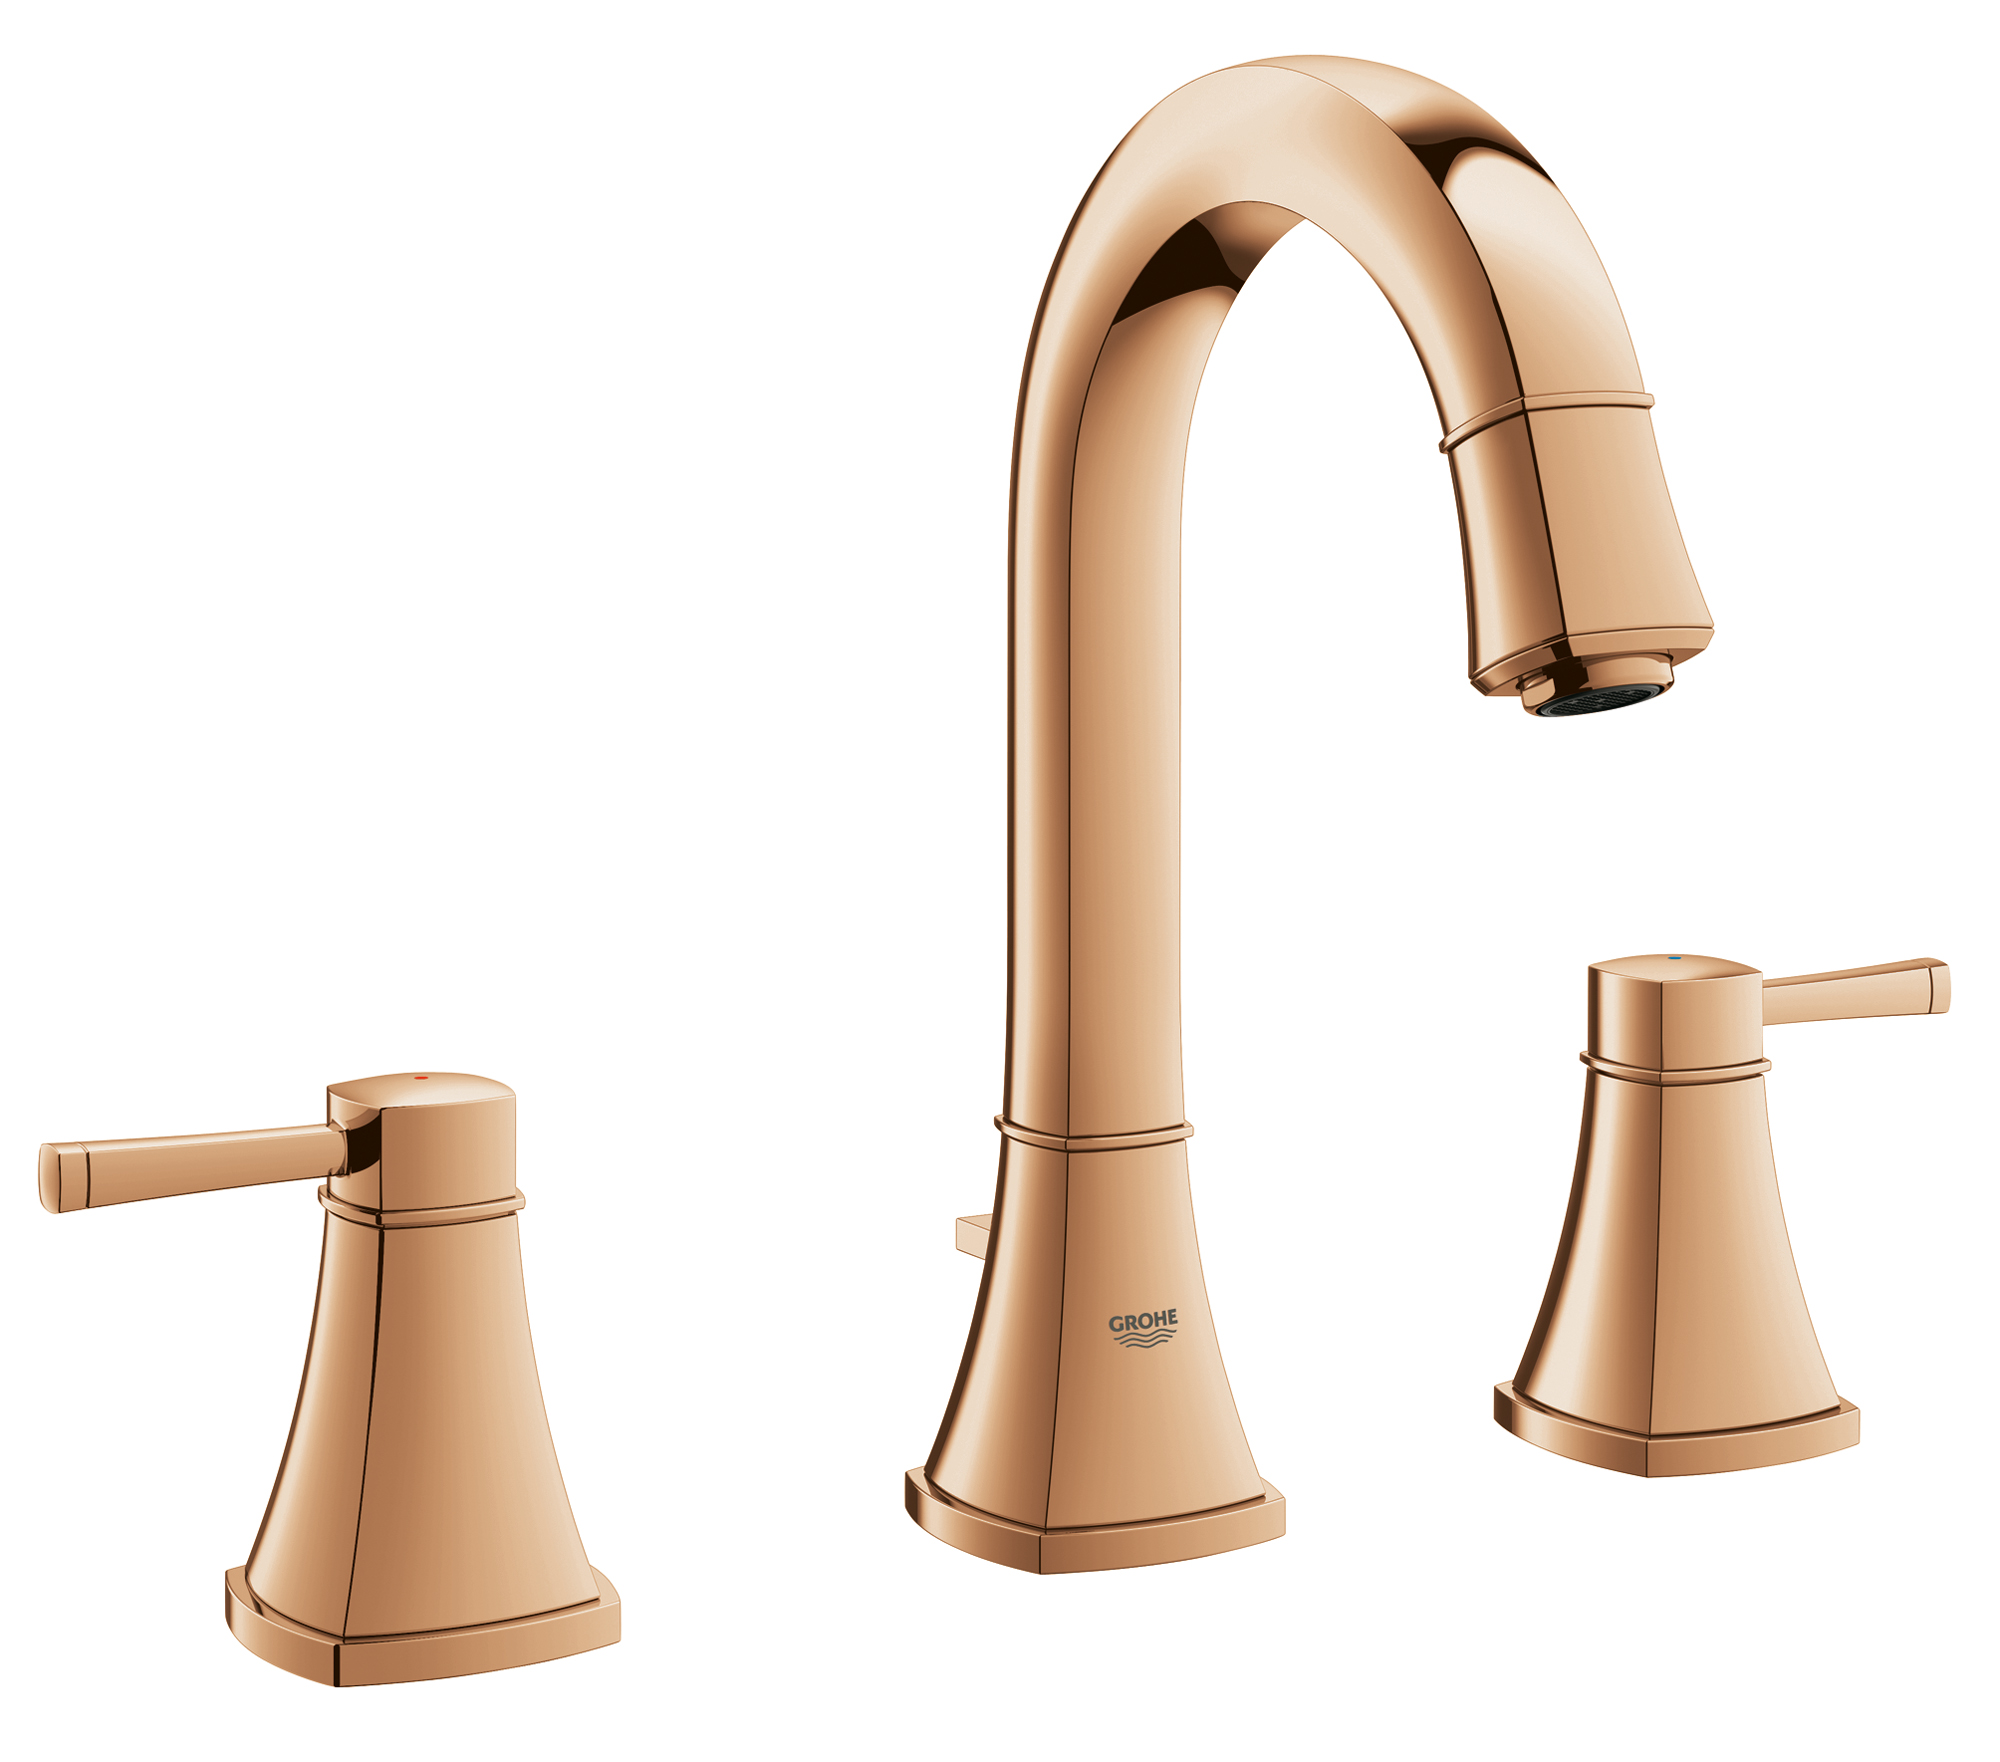 Grohe Adds Feminine Touch with Rose Gold Finish | JLC Online ...